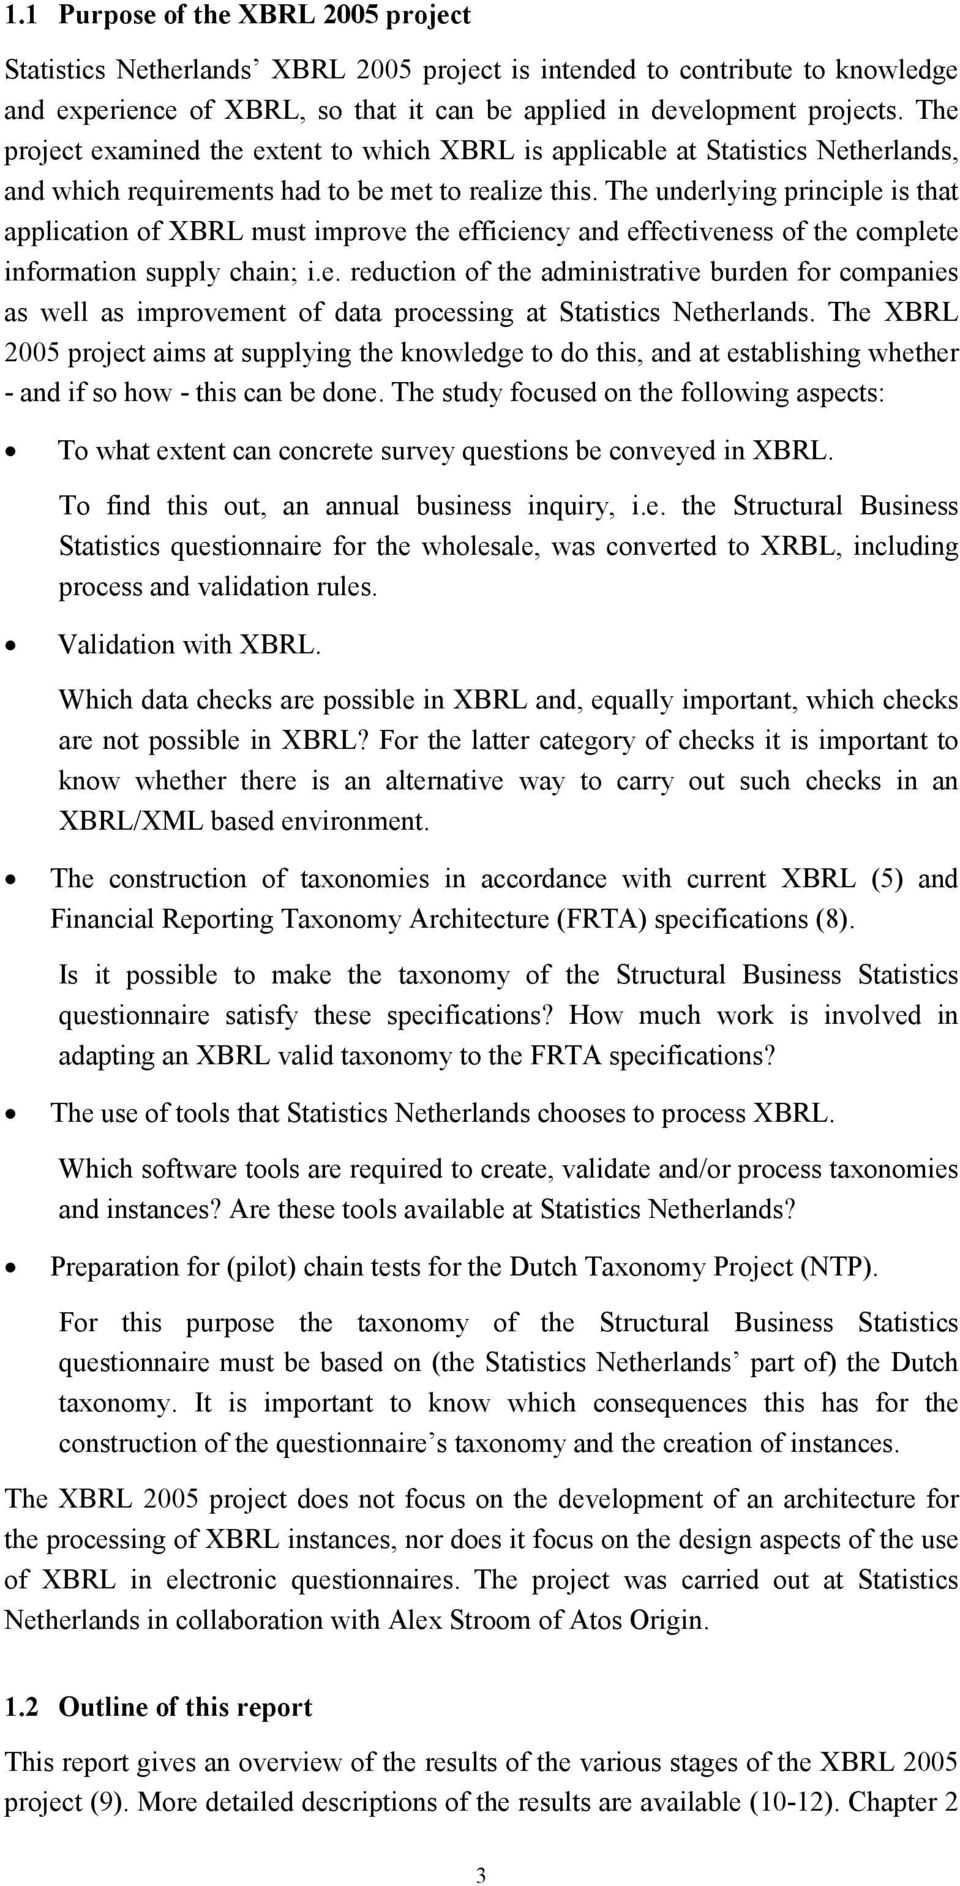 The underlying principle is that application of XBRL must improve the efficiency and effectiveness of the complete information supply chain; i.e. reduction of the administrative burden for companies as well as improvement of data processing at Statistics Netherlands.